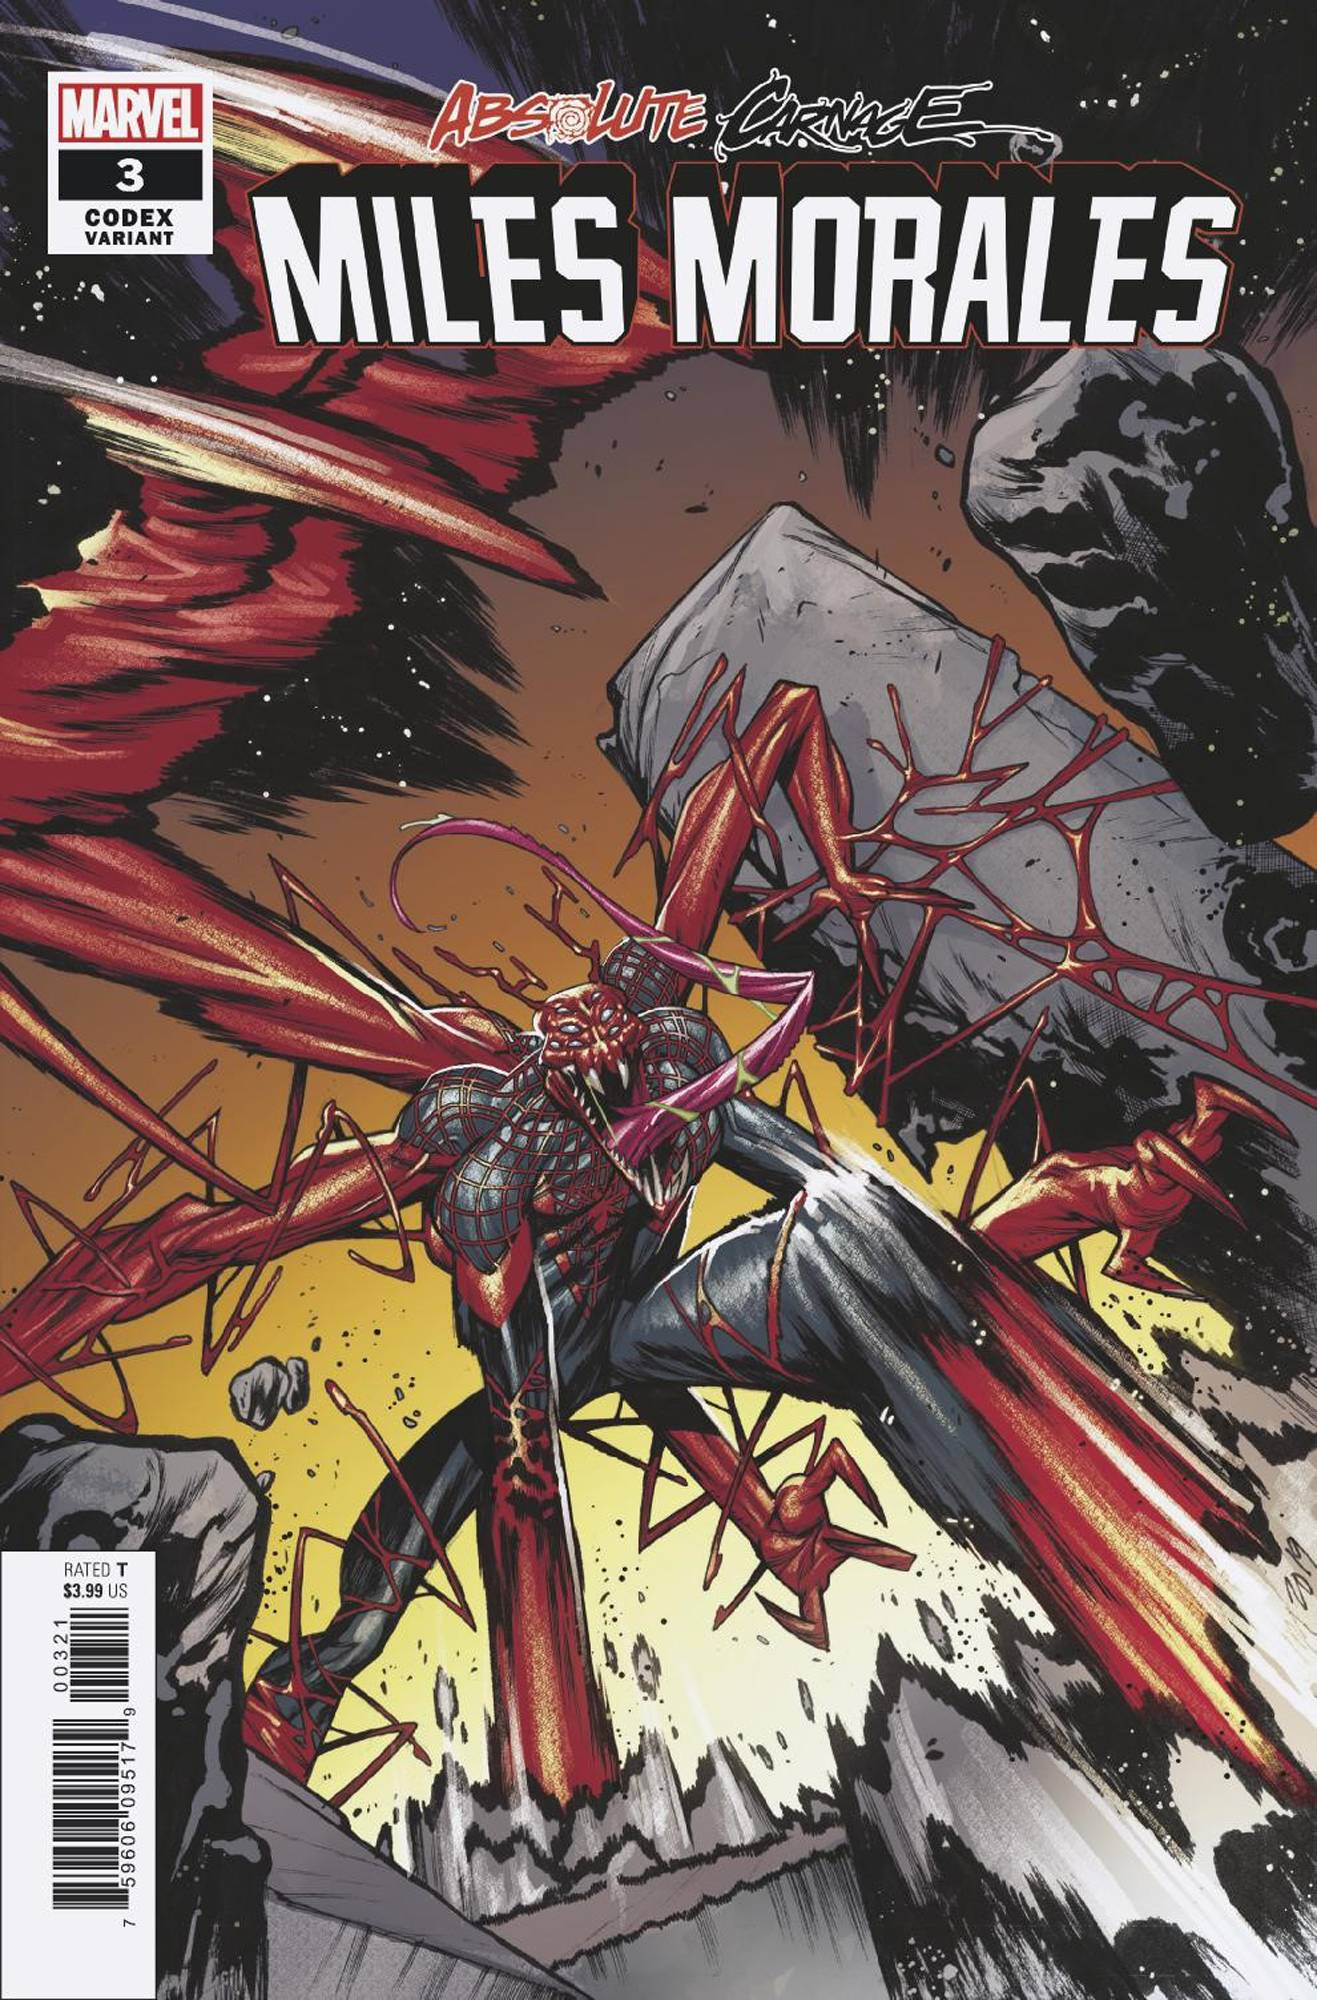 10/09/2019 ABSOLUTE CARNAGE MILES MORALES #3 (OF 3) JACINTO 1:25 CODEX VARIANT